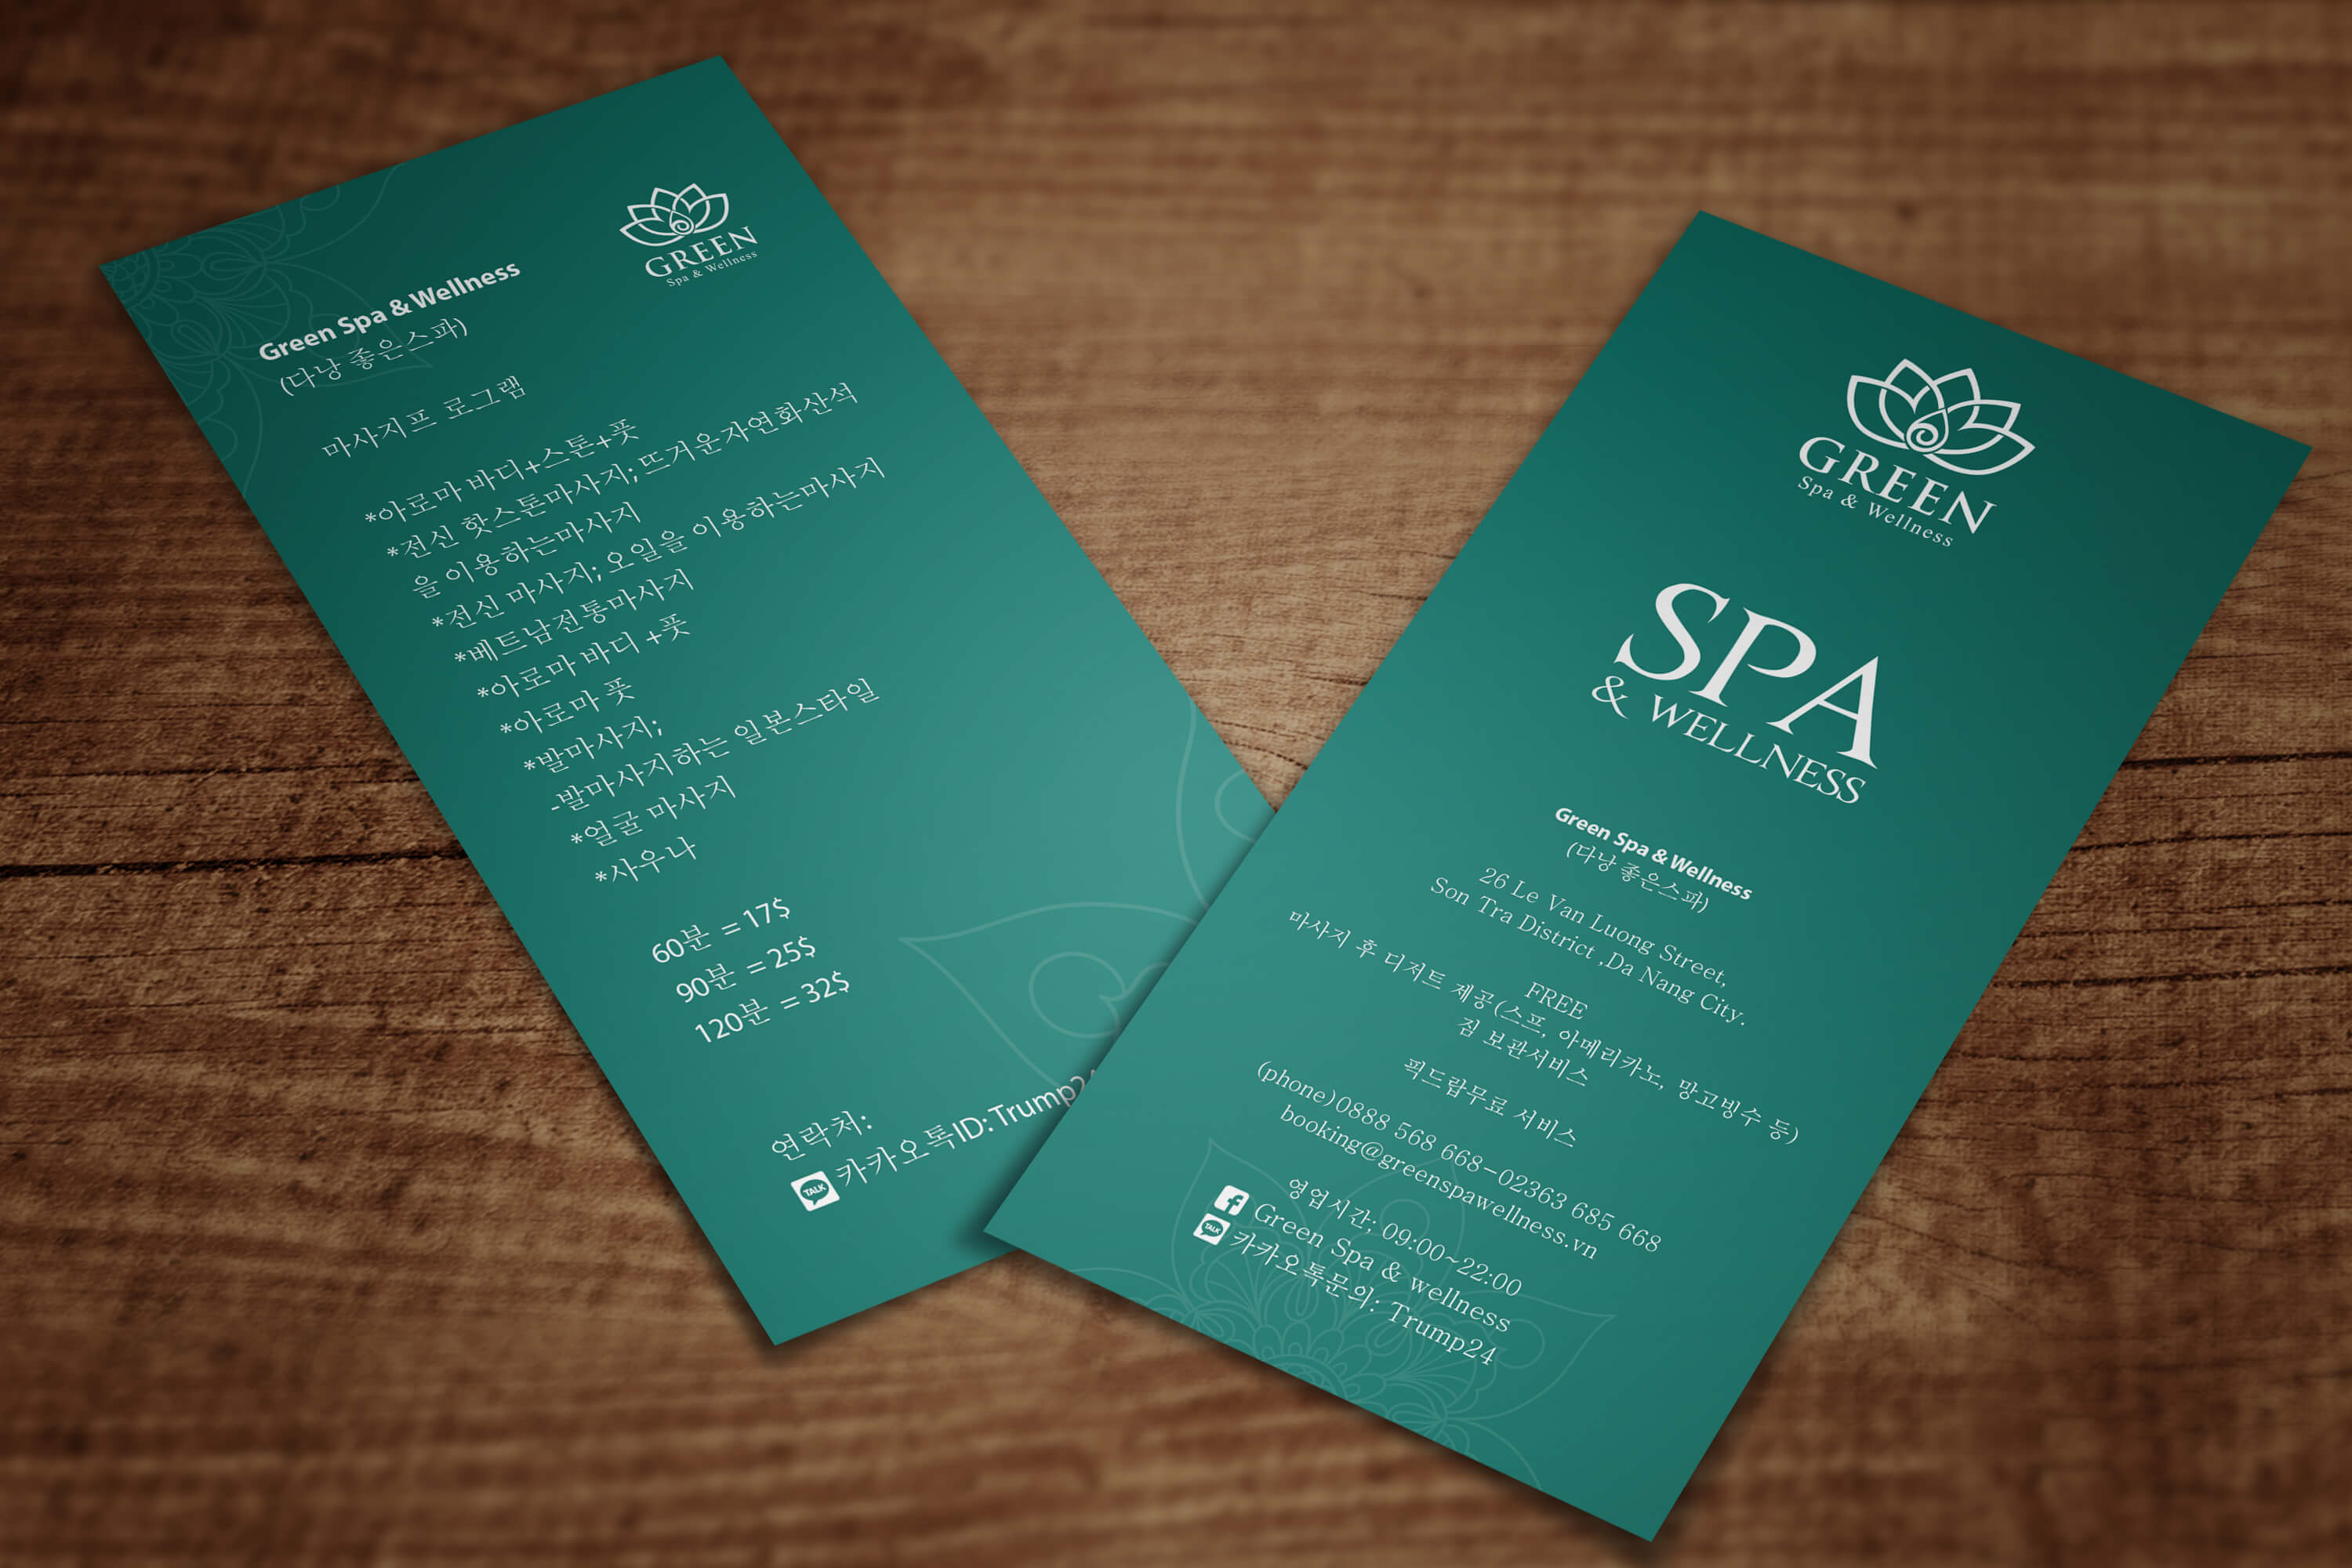 5 - Green Spa & Wellness